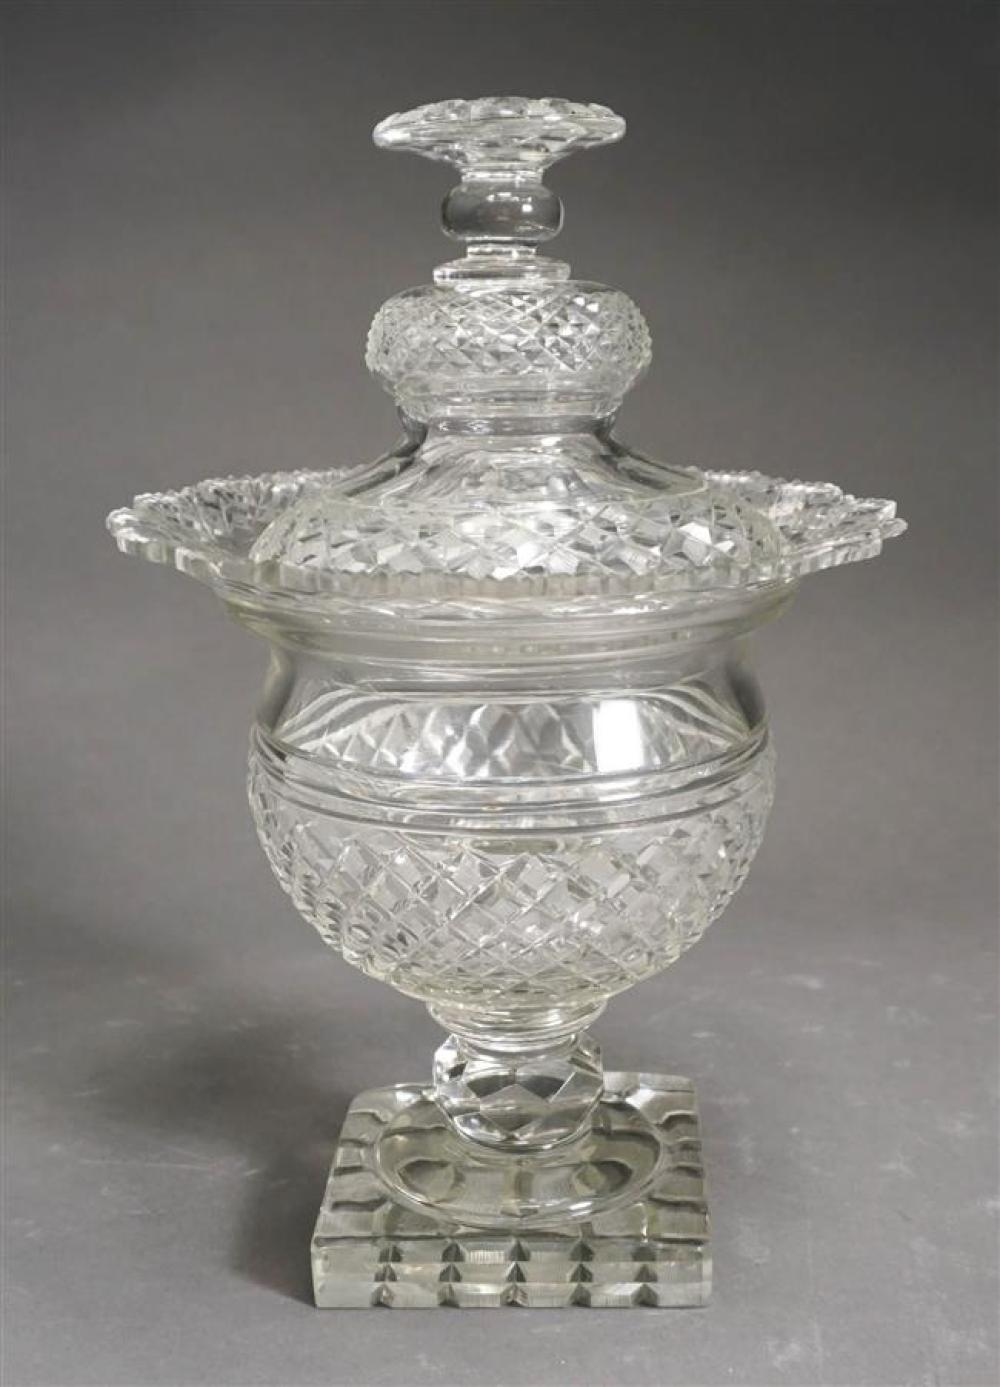 Anglo-Irish Cut Crystal Covered Compote, 19th Century (damaged with repairs); Overall Height 12 Inches